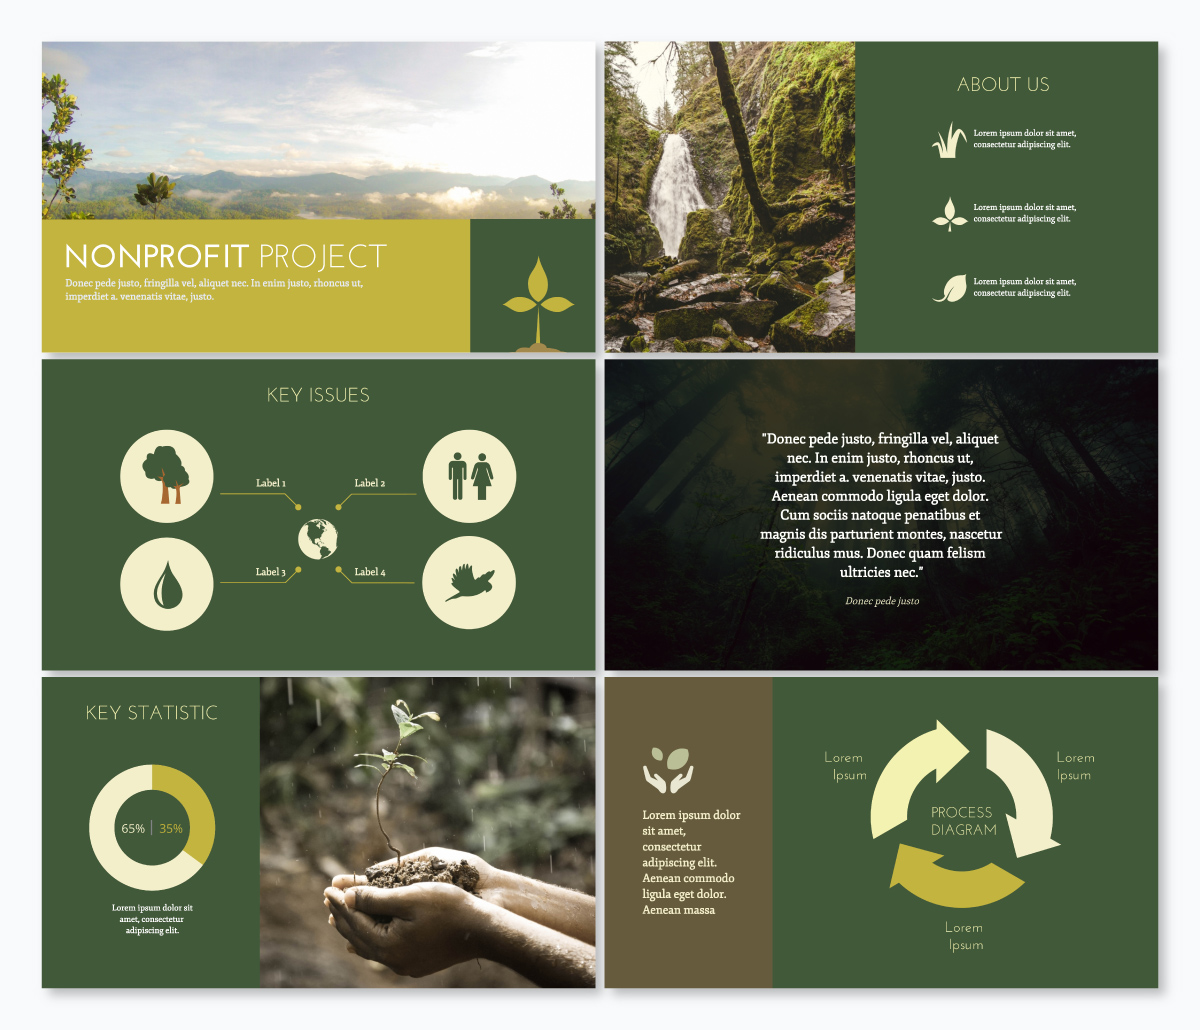 A nonprofit keynote template available in Visme.